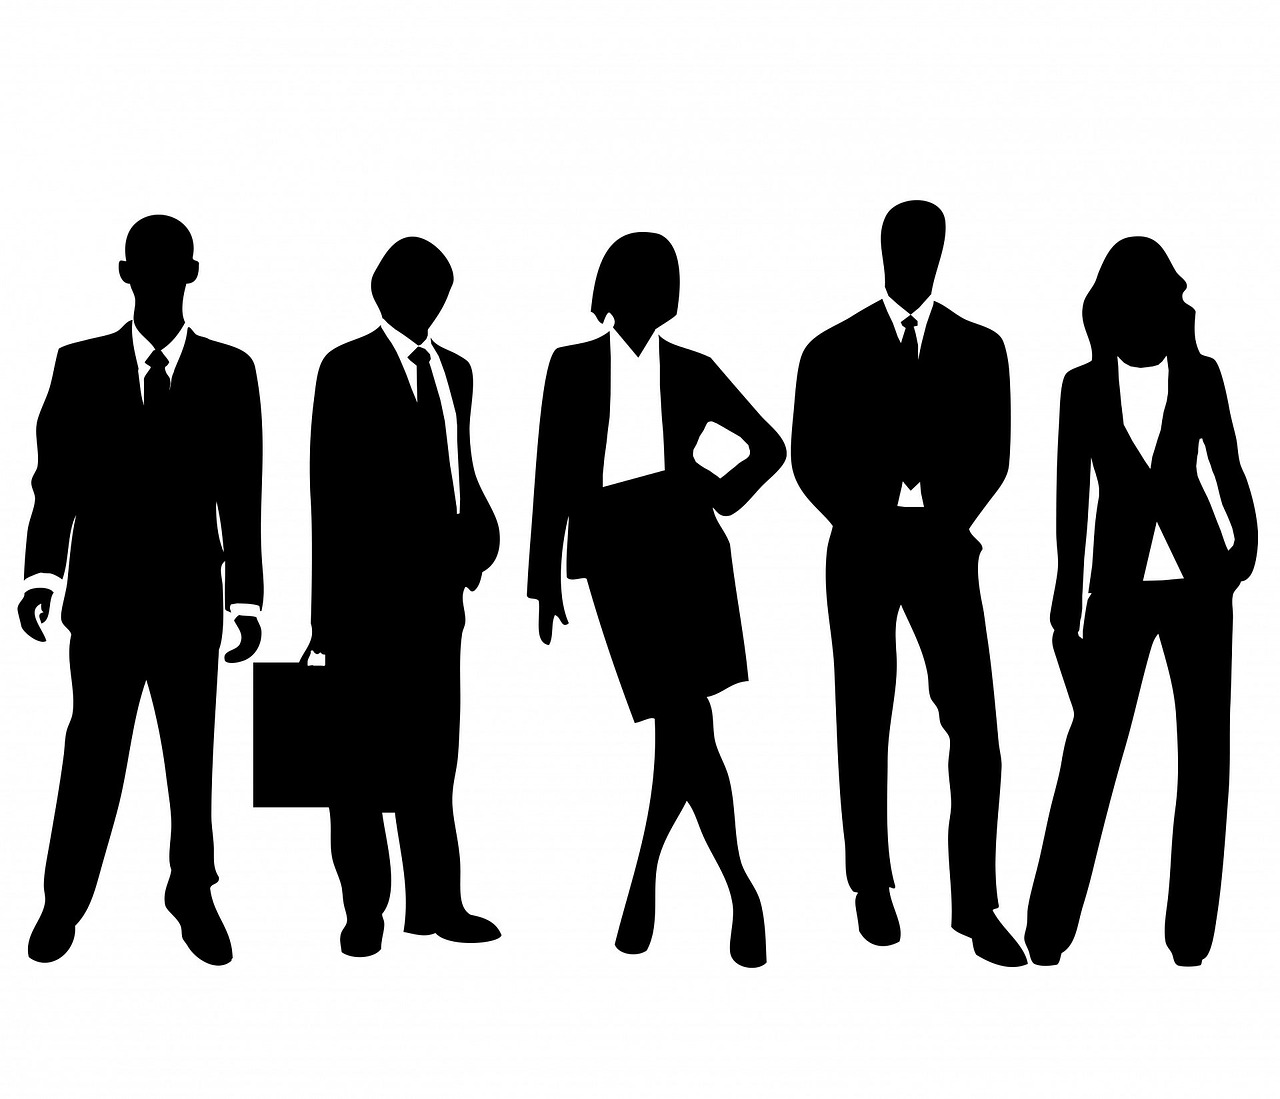 Interview clipart work interview. Now you can ace